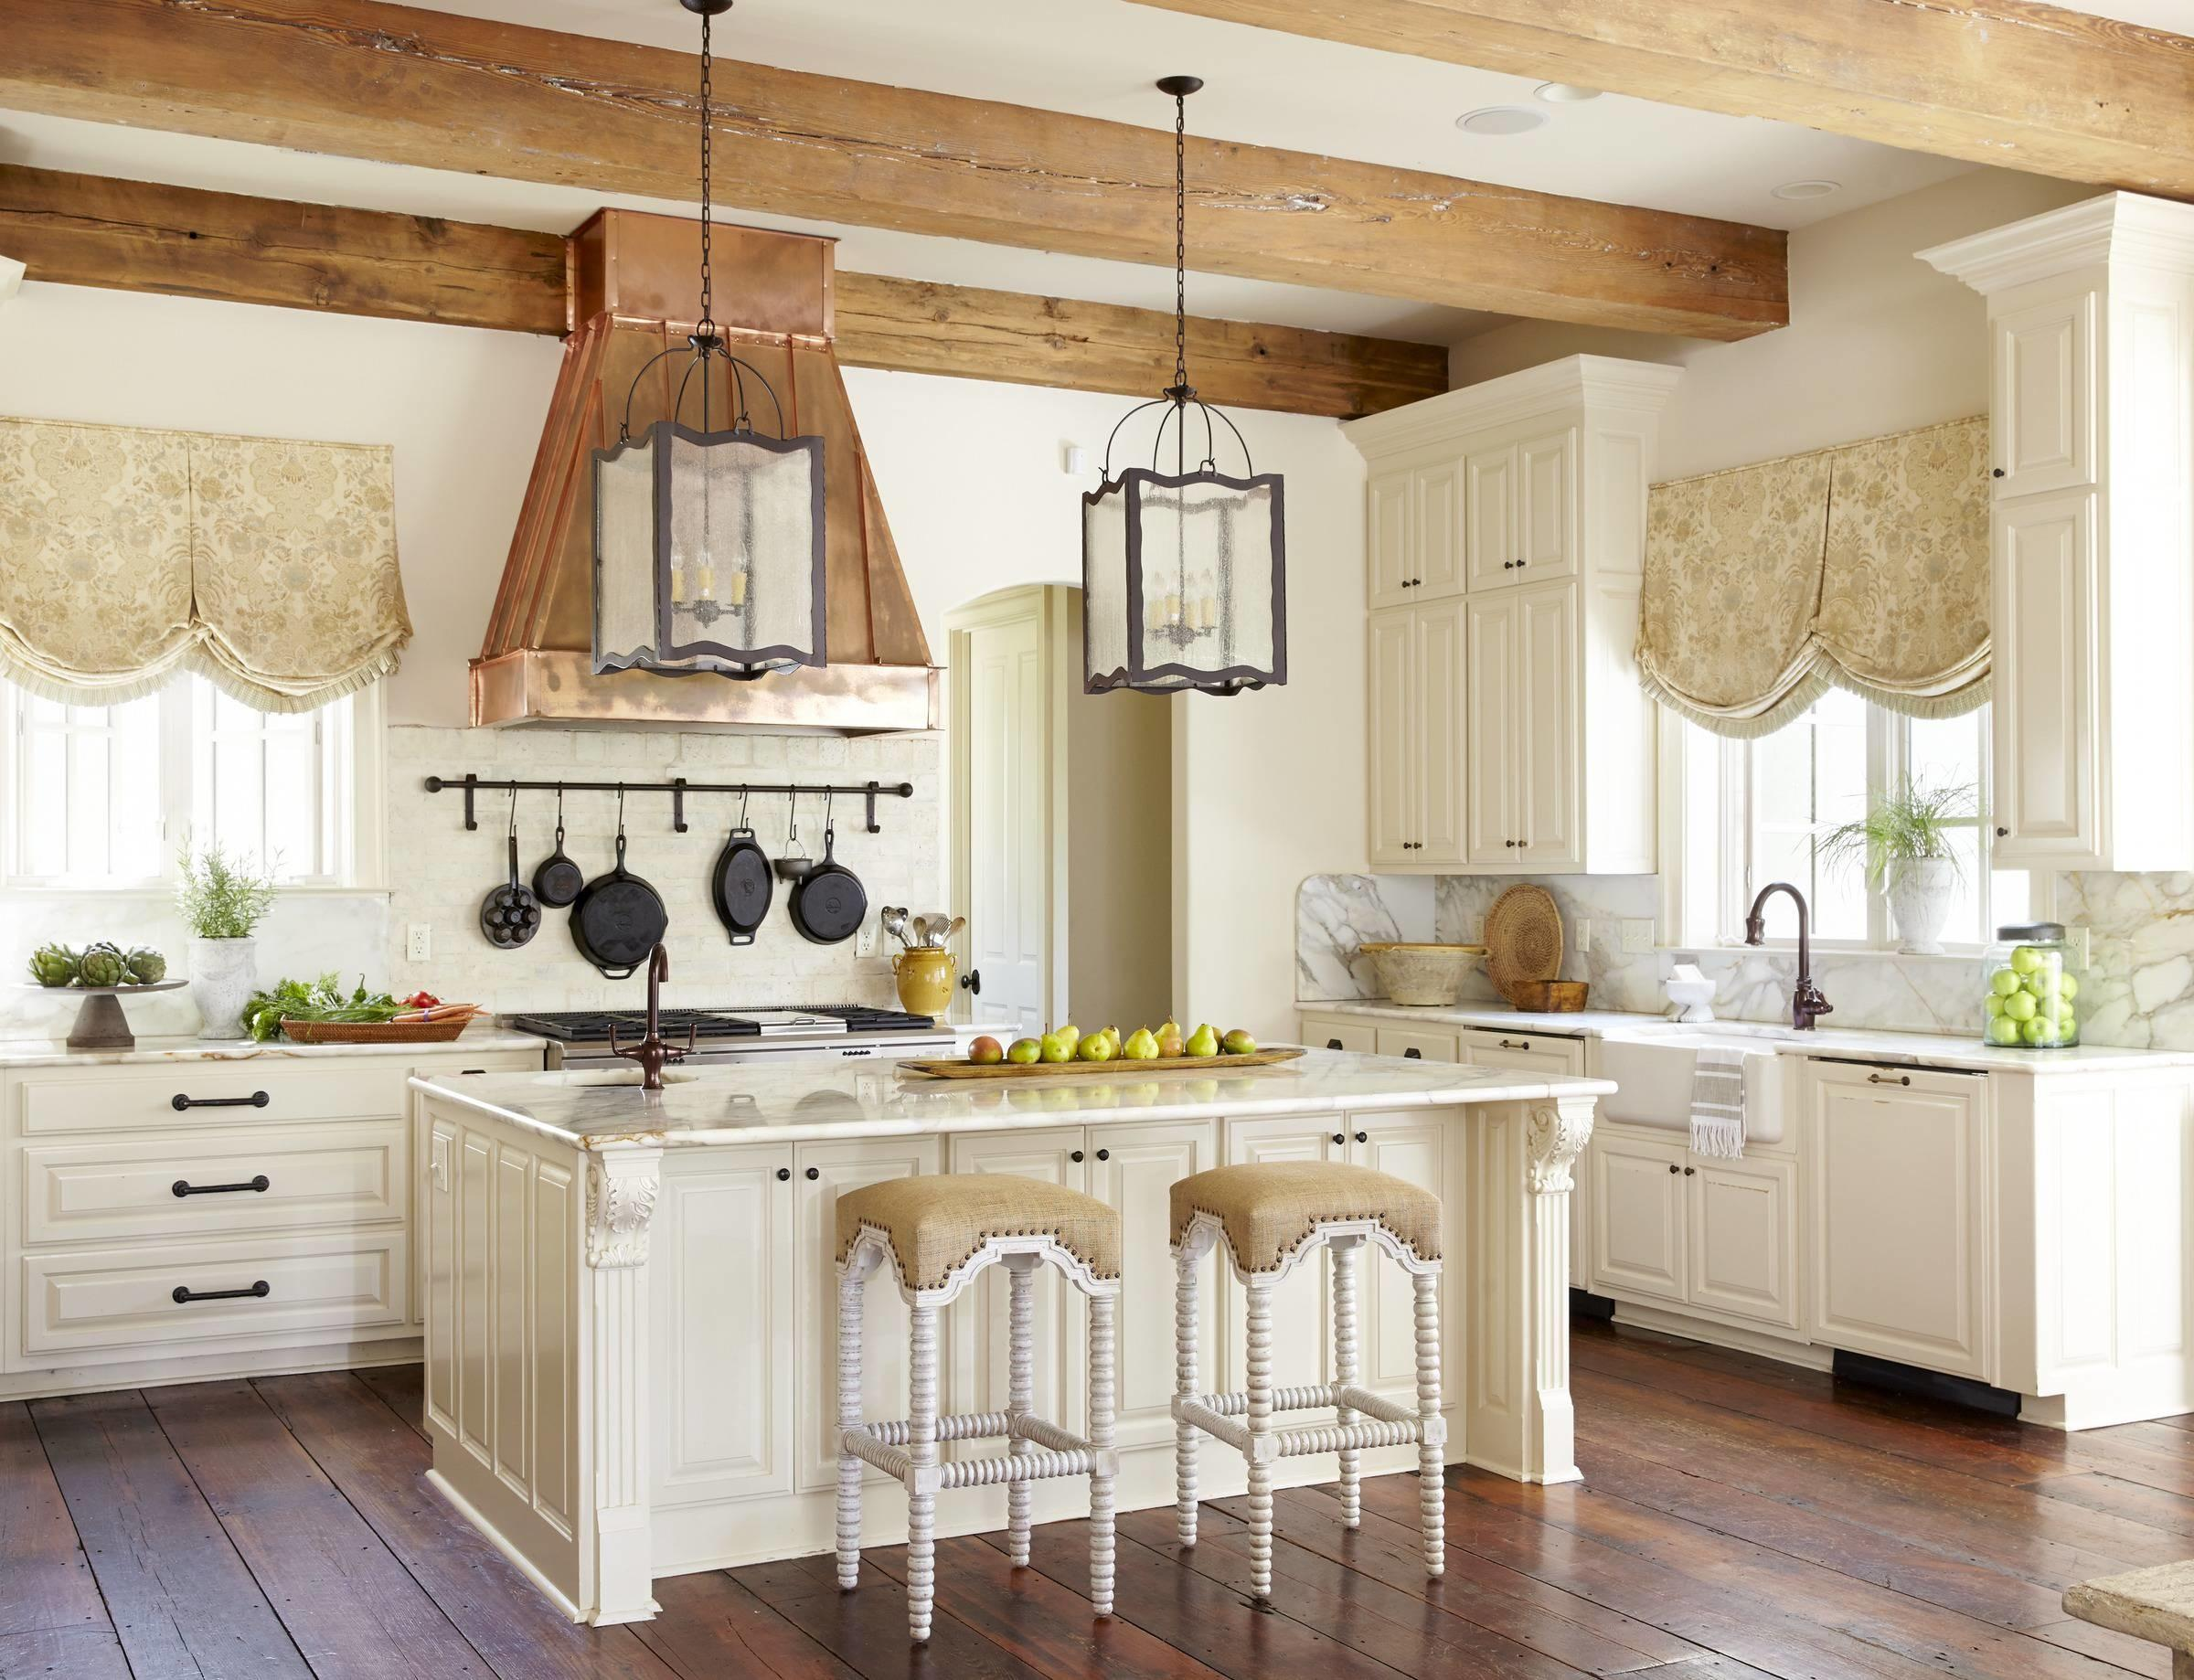 Interior Design Kitchen Island French Country Style